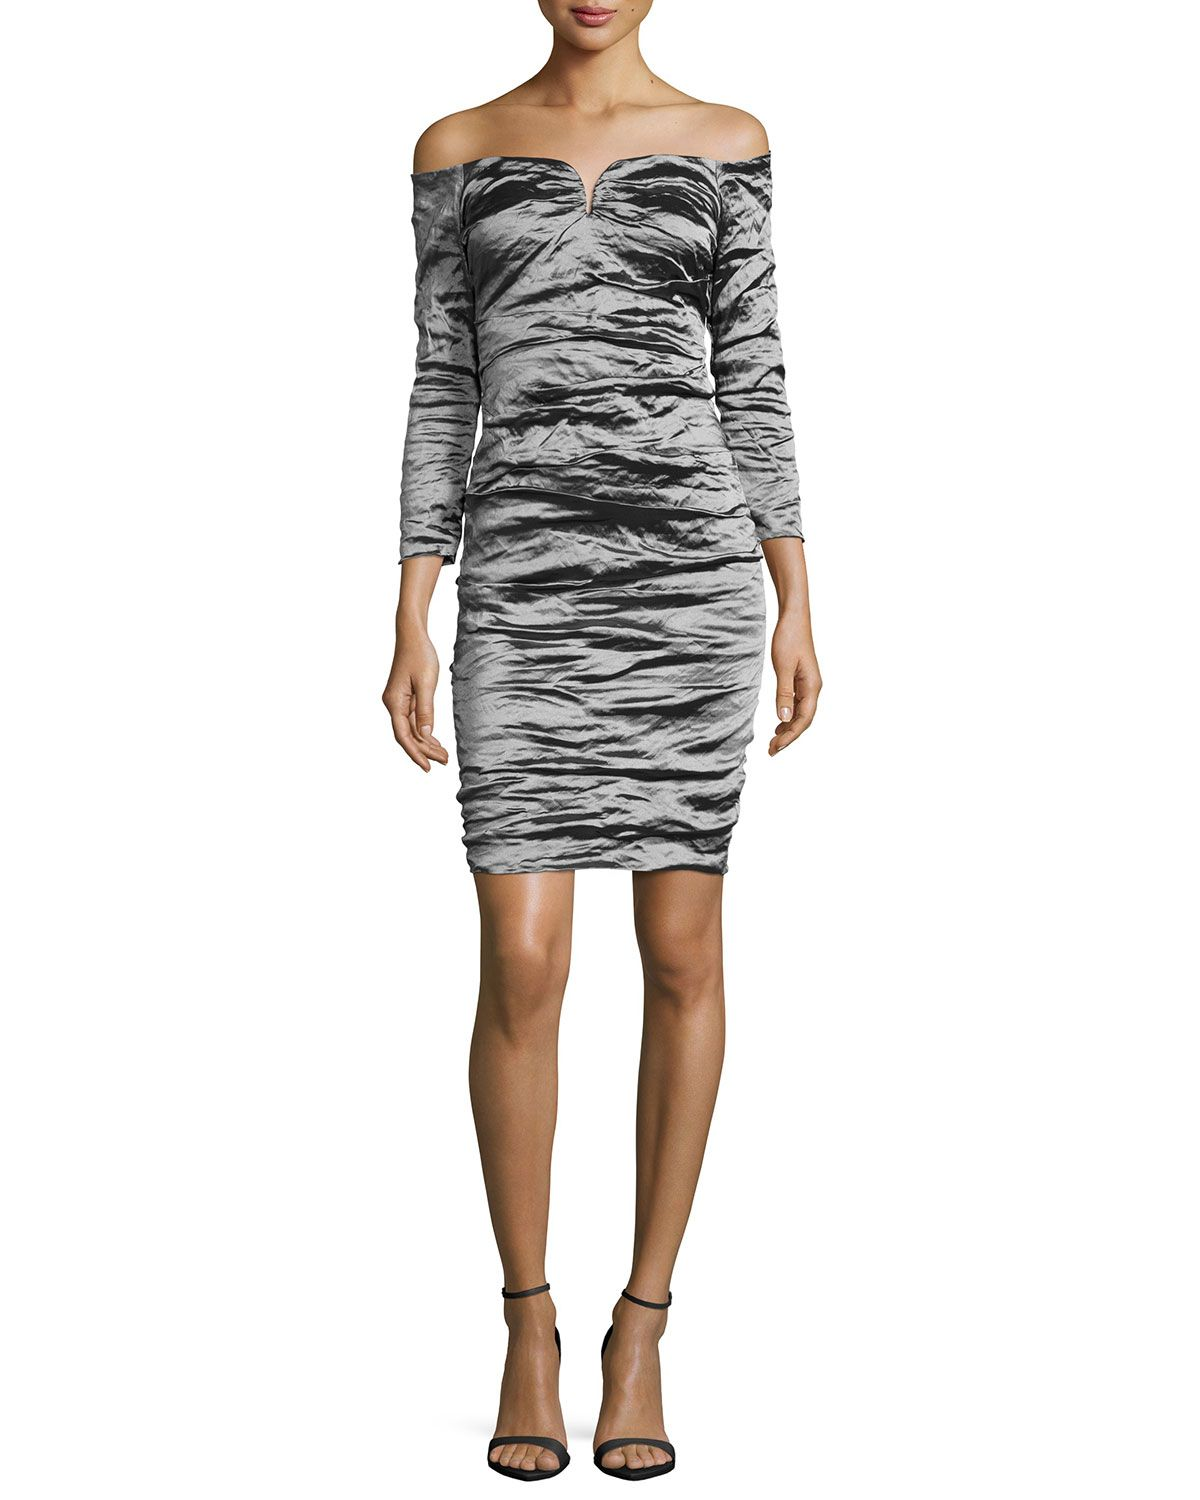 6885dd477f9f42 Off-the-Shoulder Ruched Cocktail Dress, Size: 6, Silver - Nicole Miller